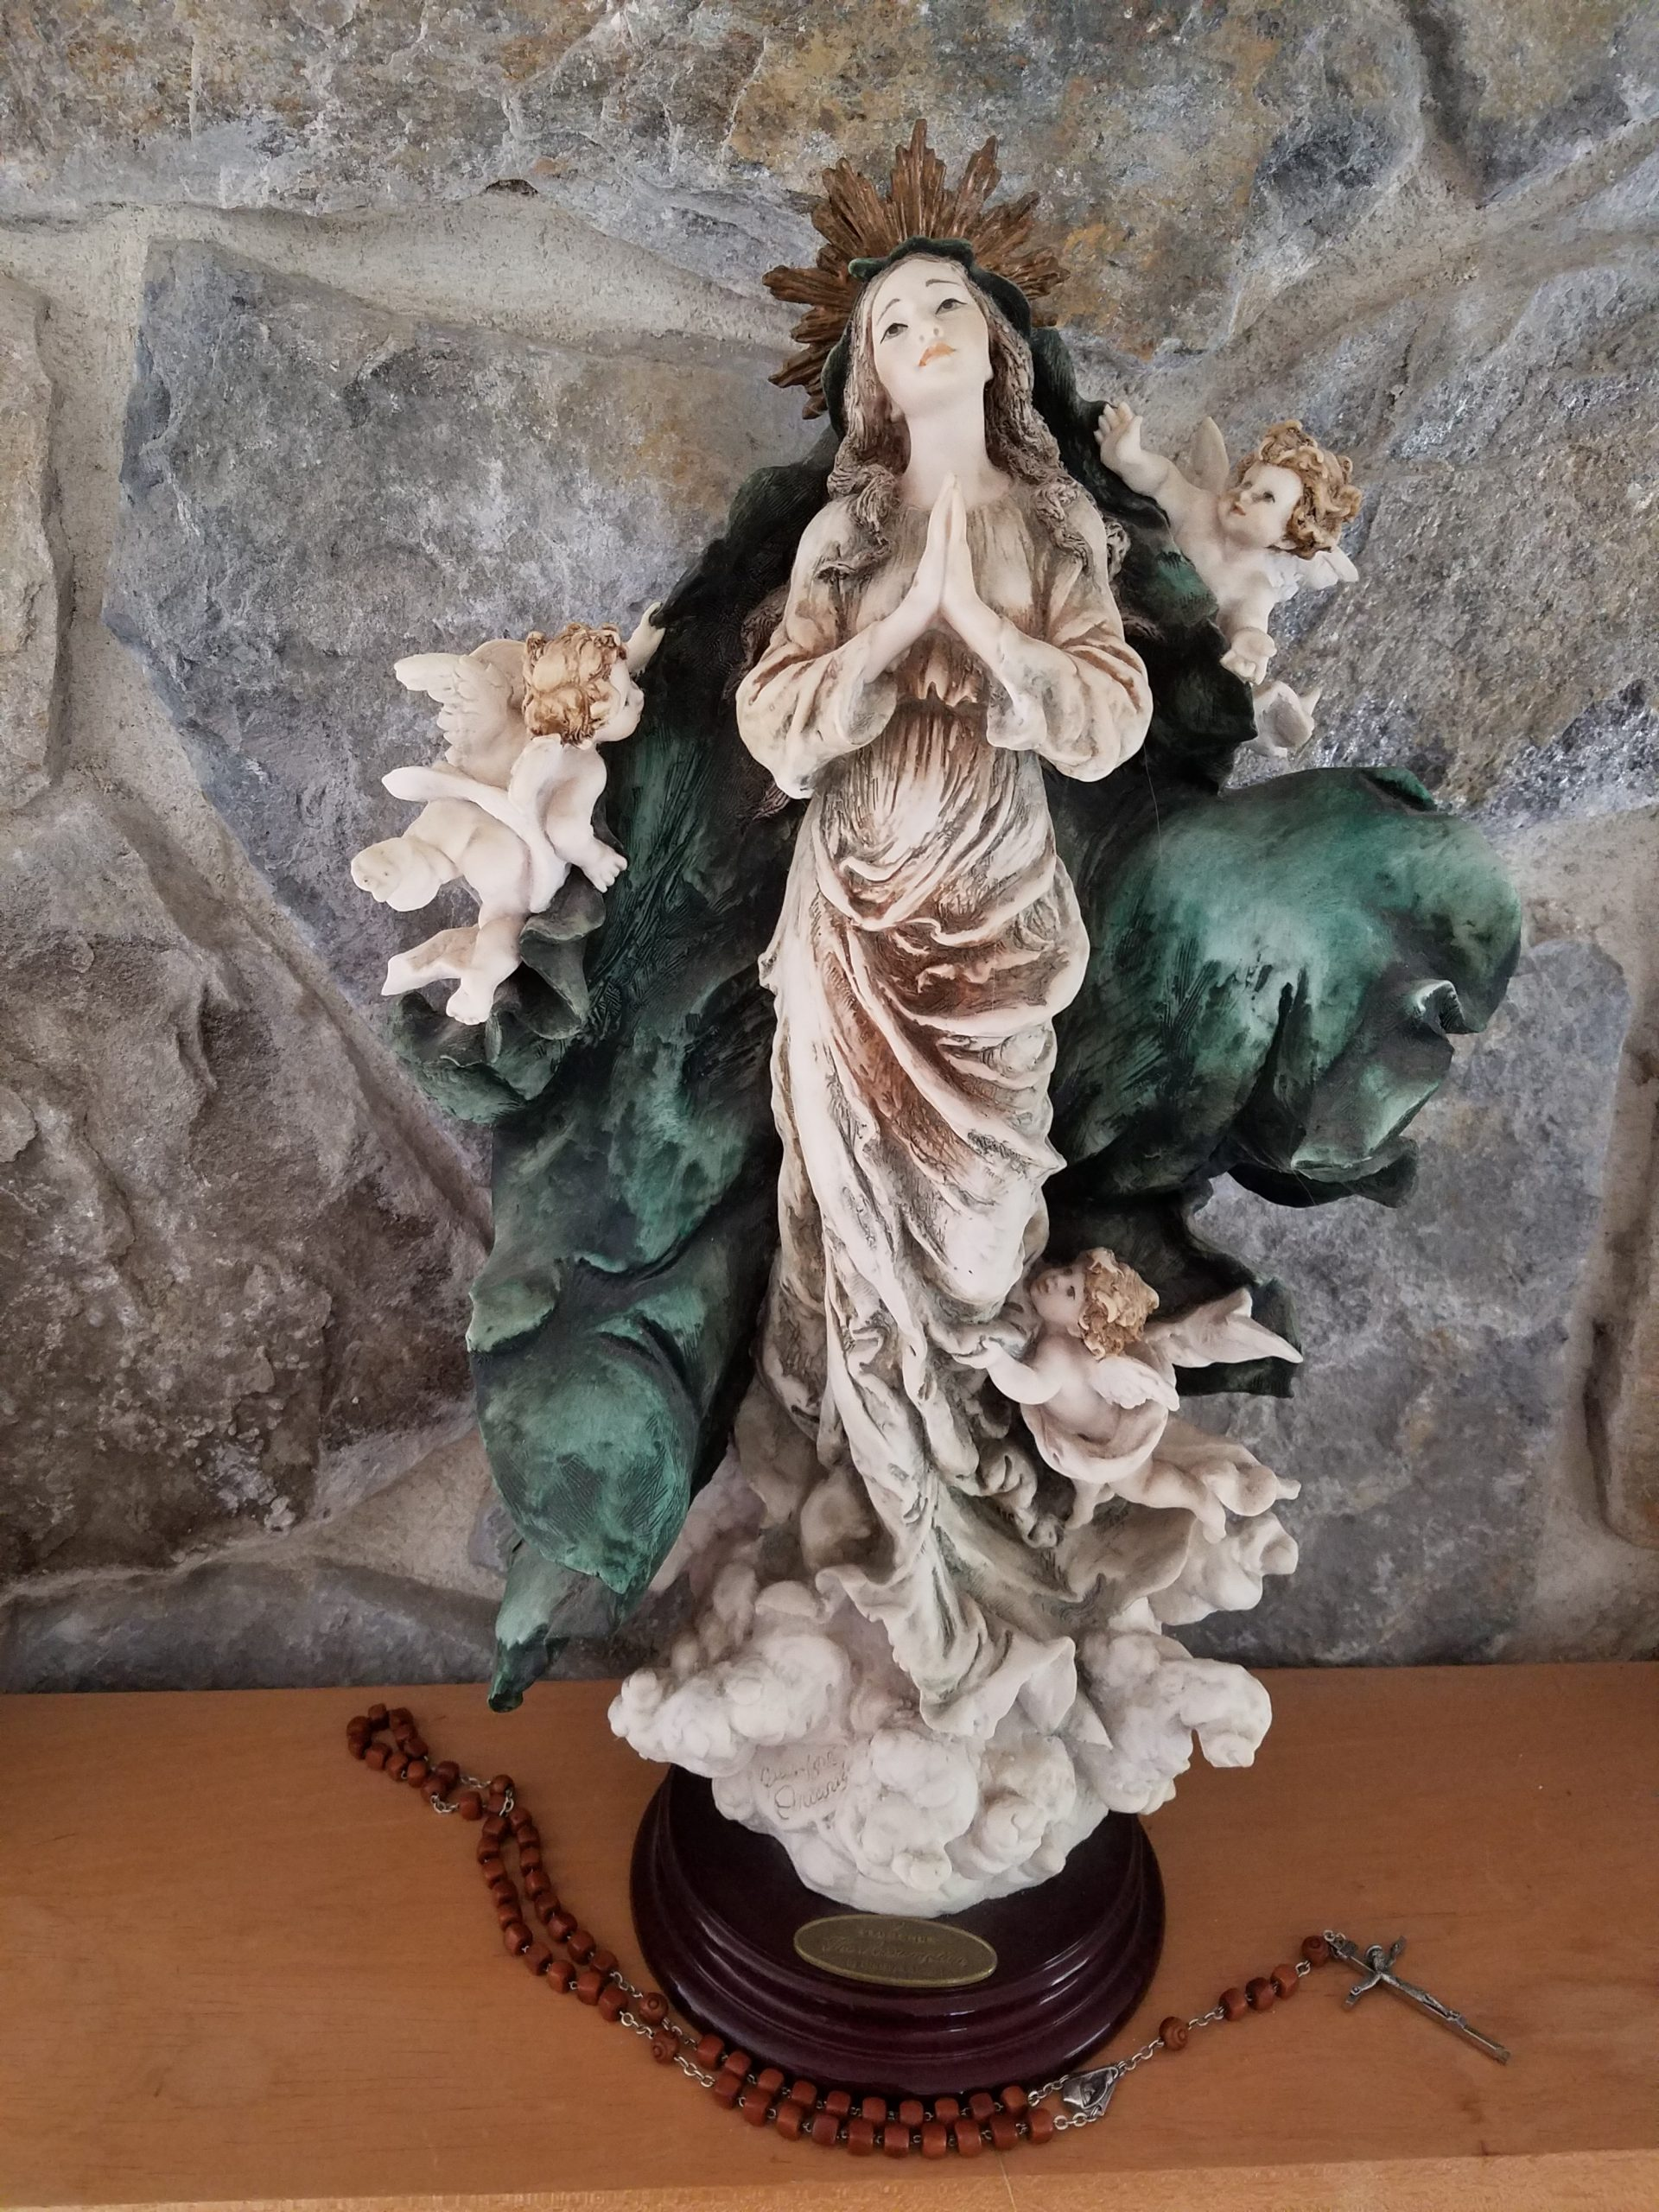 The The Feast day of the assumption of Mary was the beginning day of our mission. We needed her protection to overcome the evil of abortion and its causes. We give thanks to her by consecrating this organization to her Immaculate Heart.